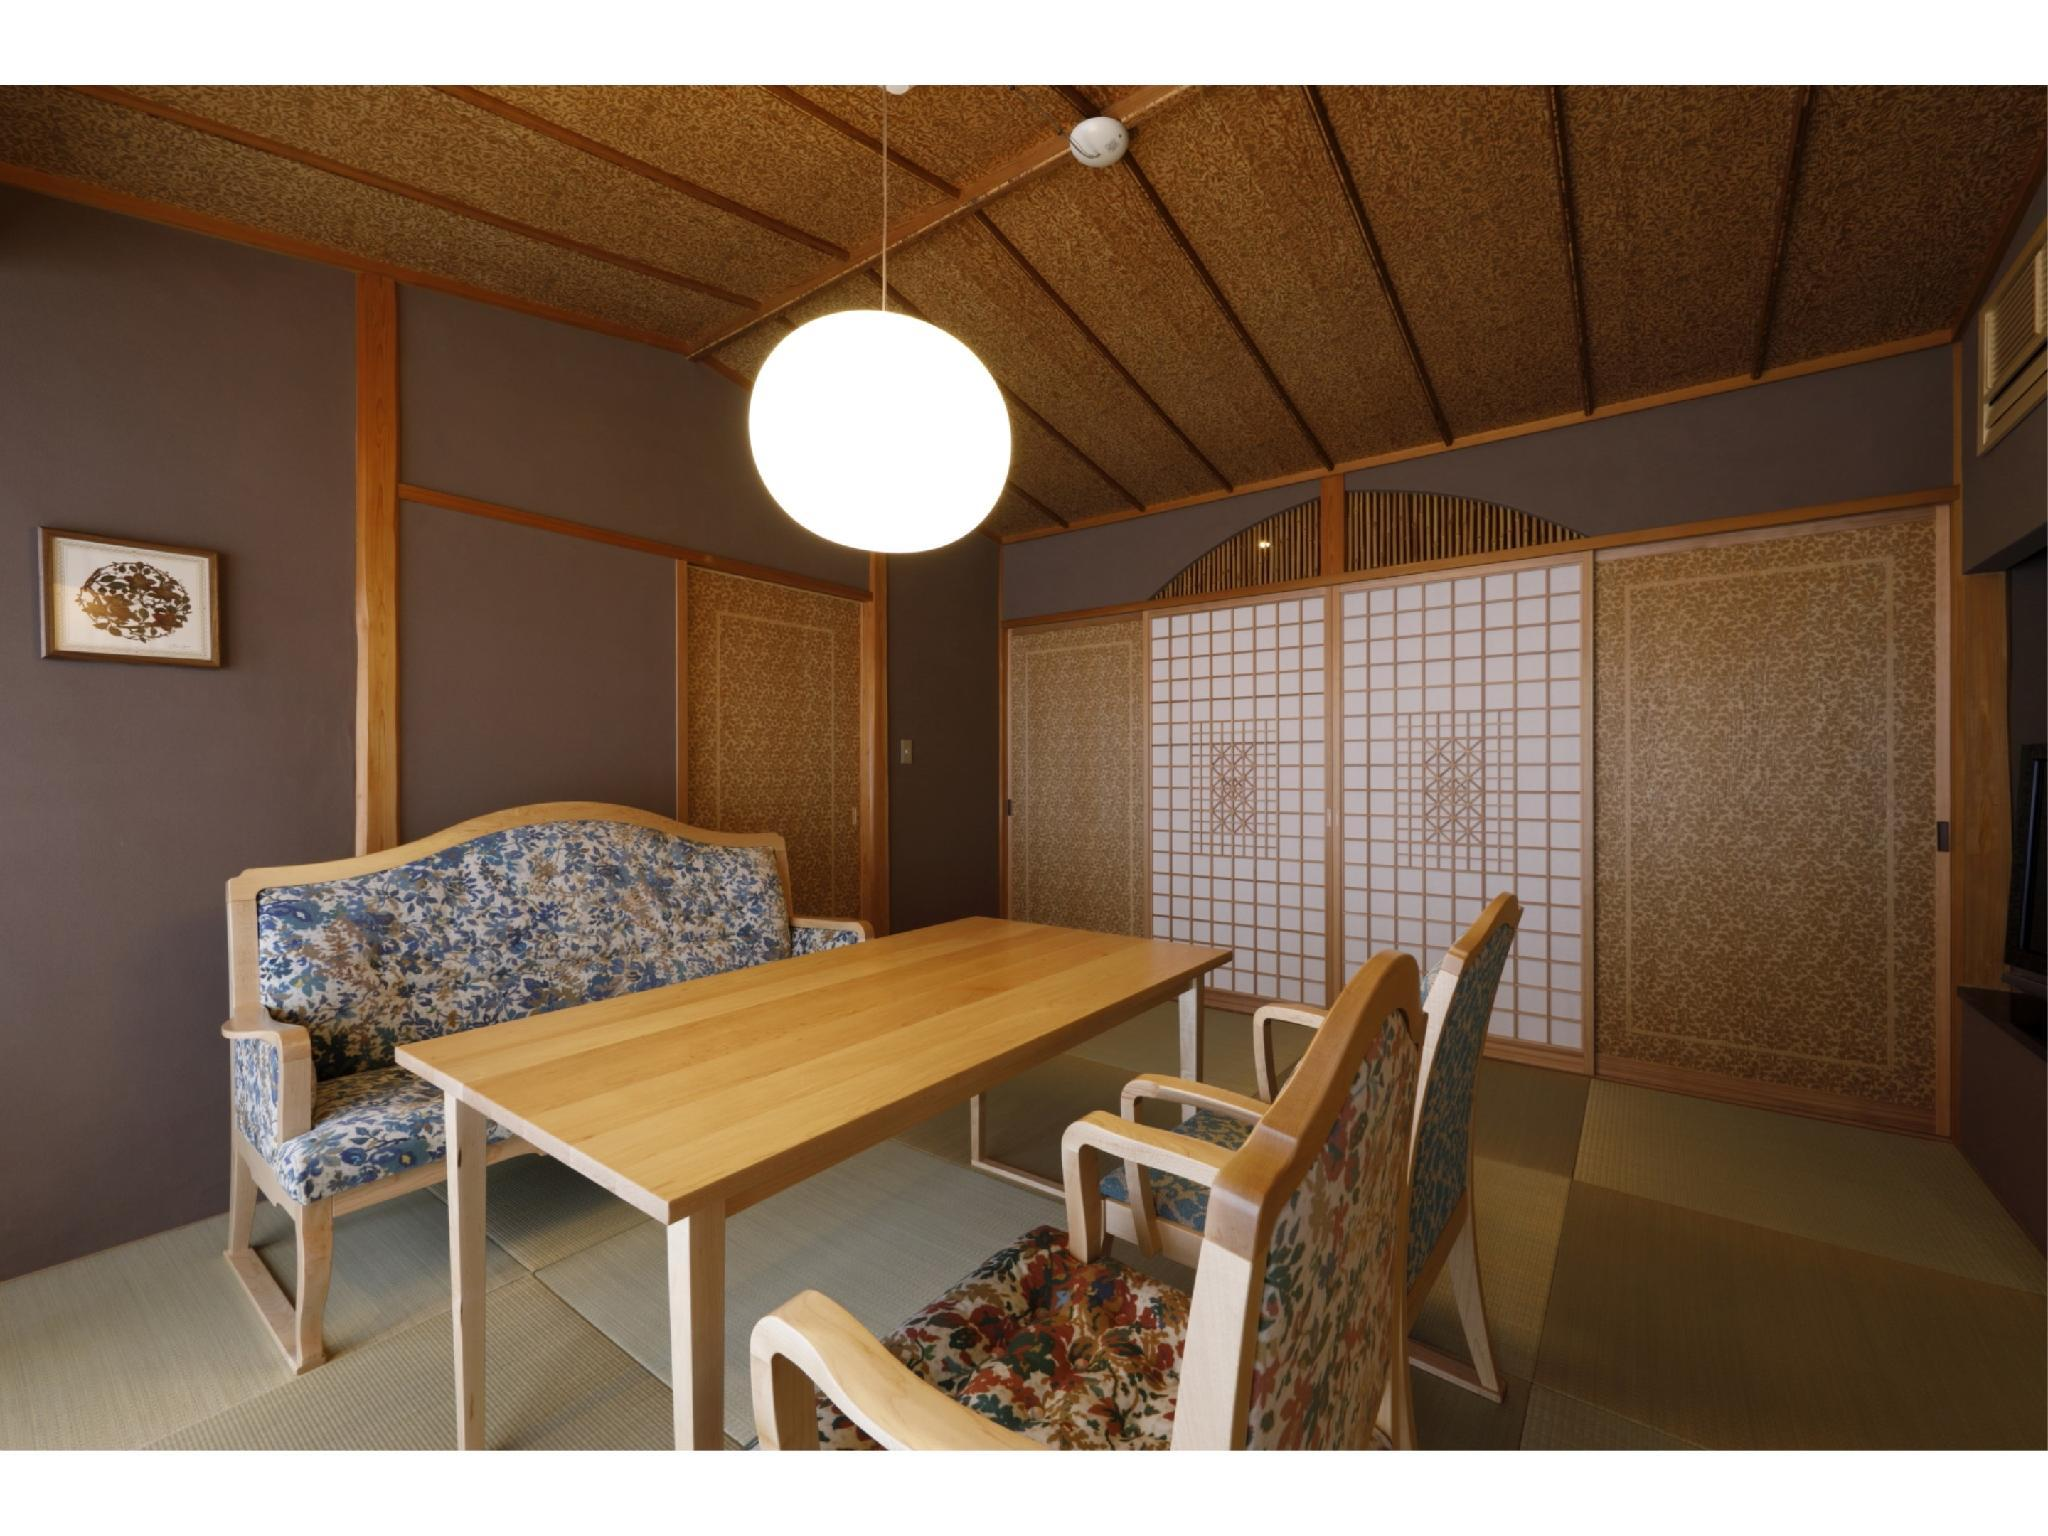 獨立特別房(和式房+溫泉露天風呂) (Detached Special Japanese-style Room with Open-air Hot Spring Bath)